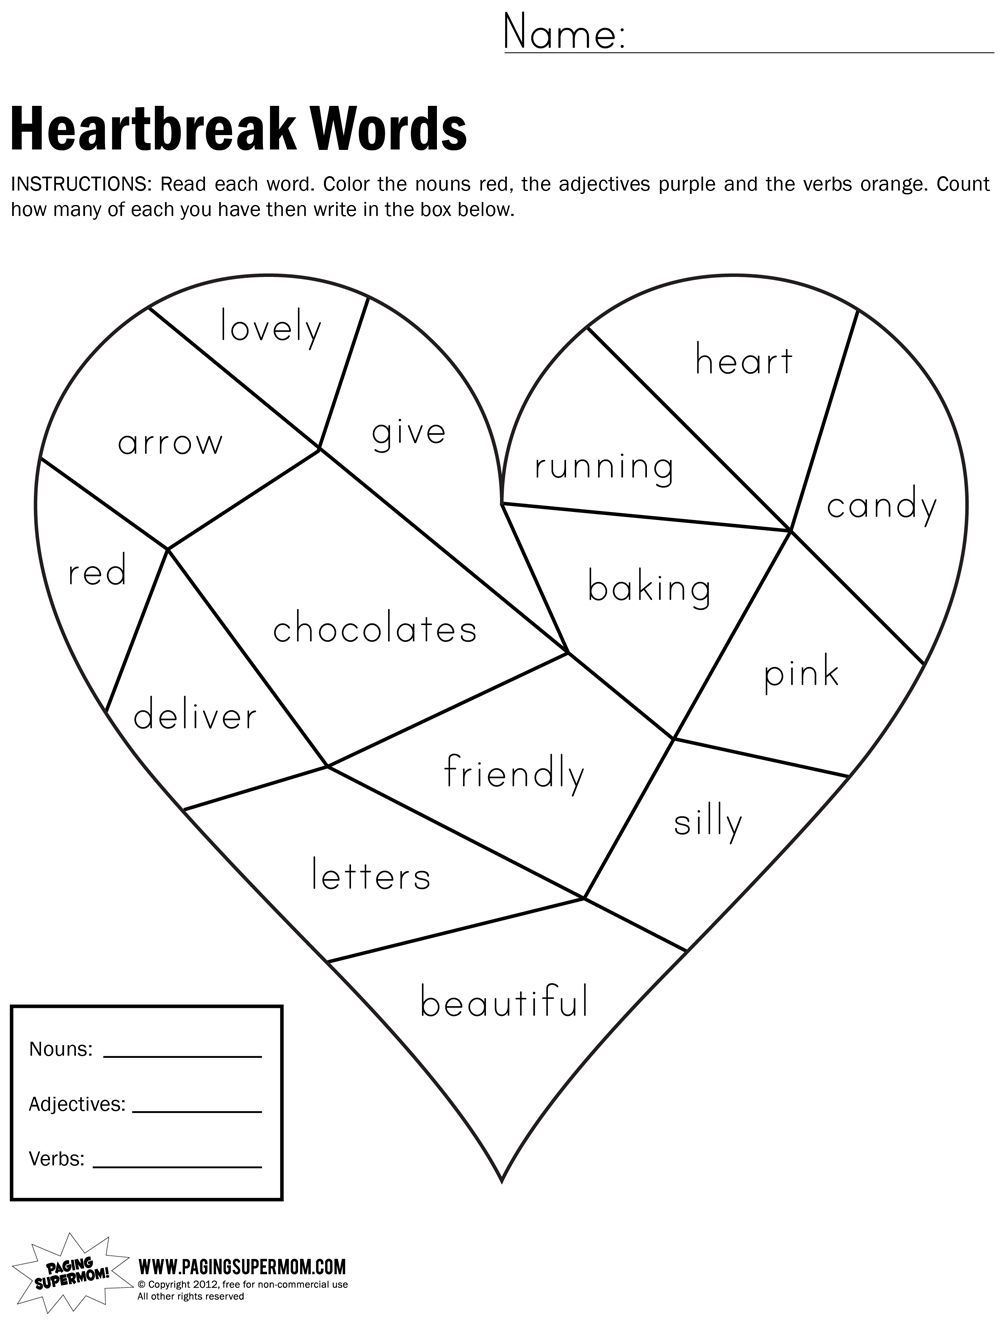 Worksheets Reading Worksheets For 1st Graders Printable 8 best images of first grade reading worksheets free printable worksheets